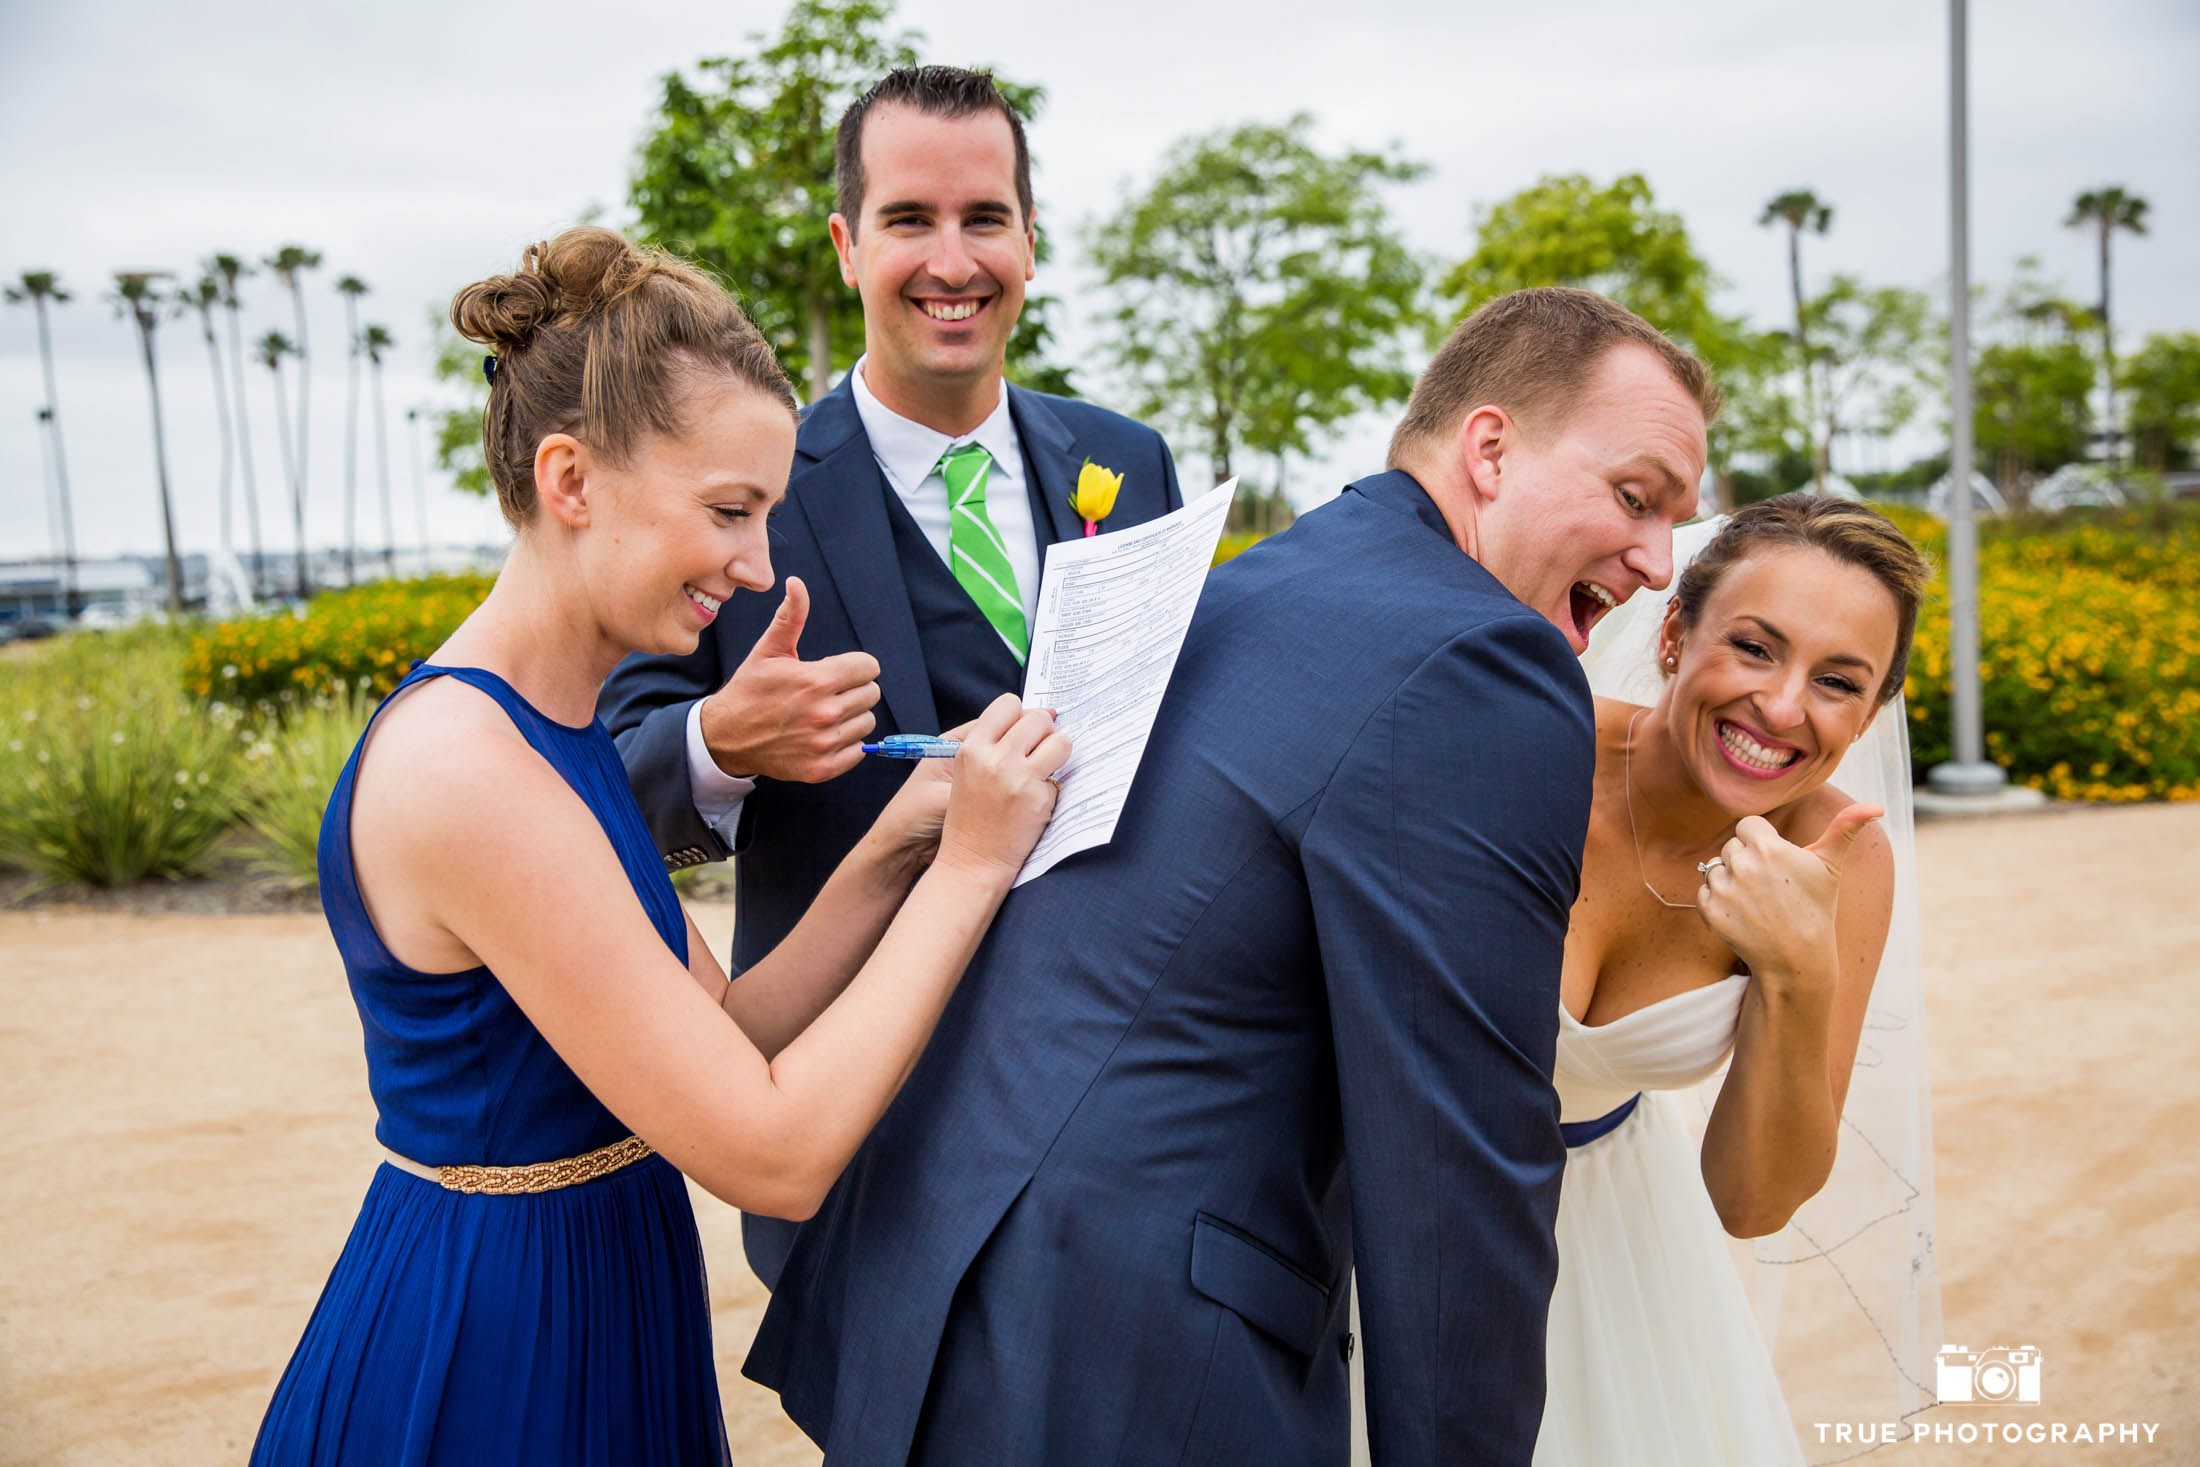 Funny signing of the wedding license